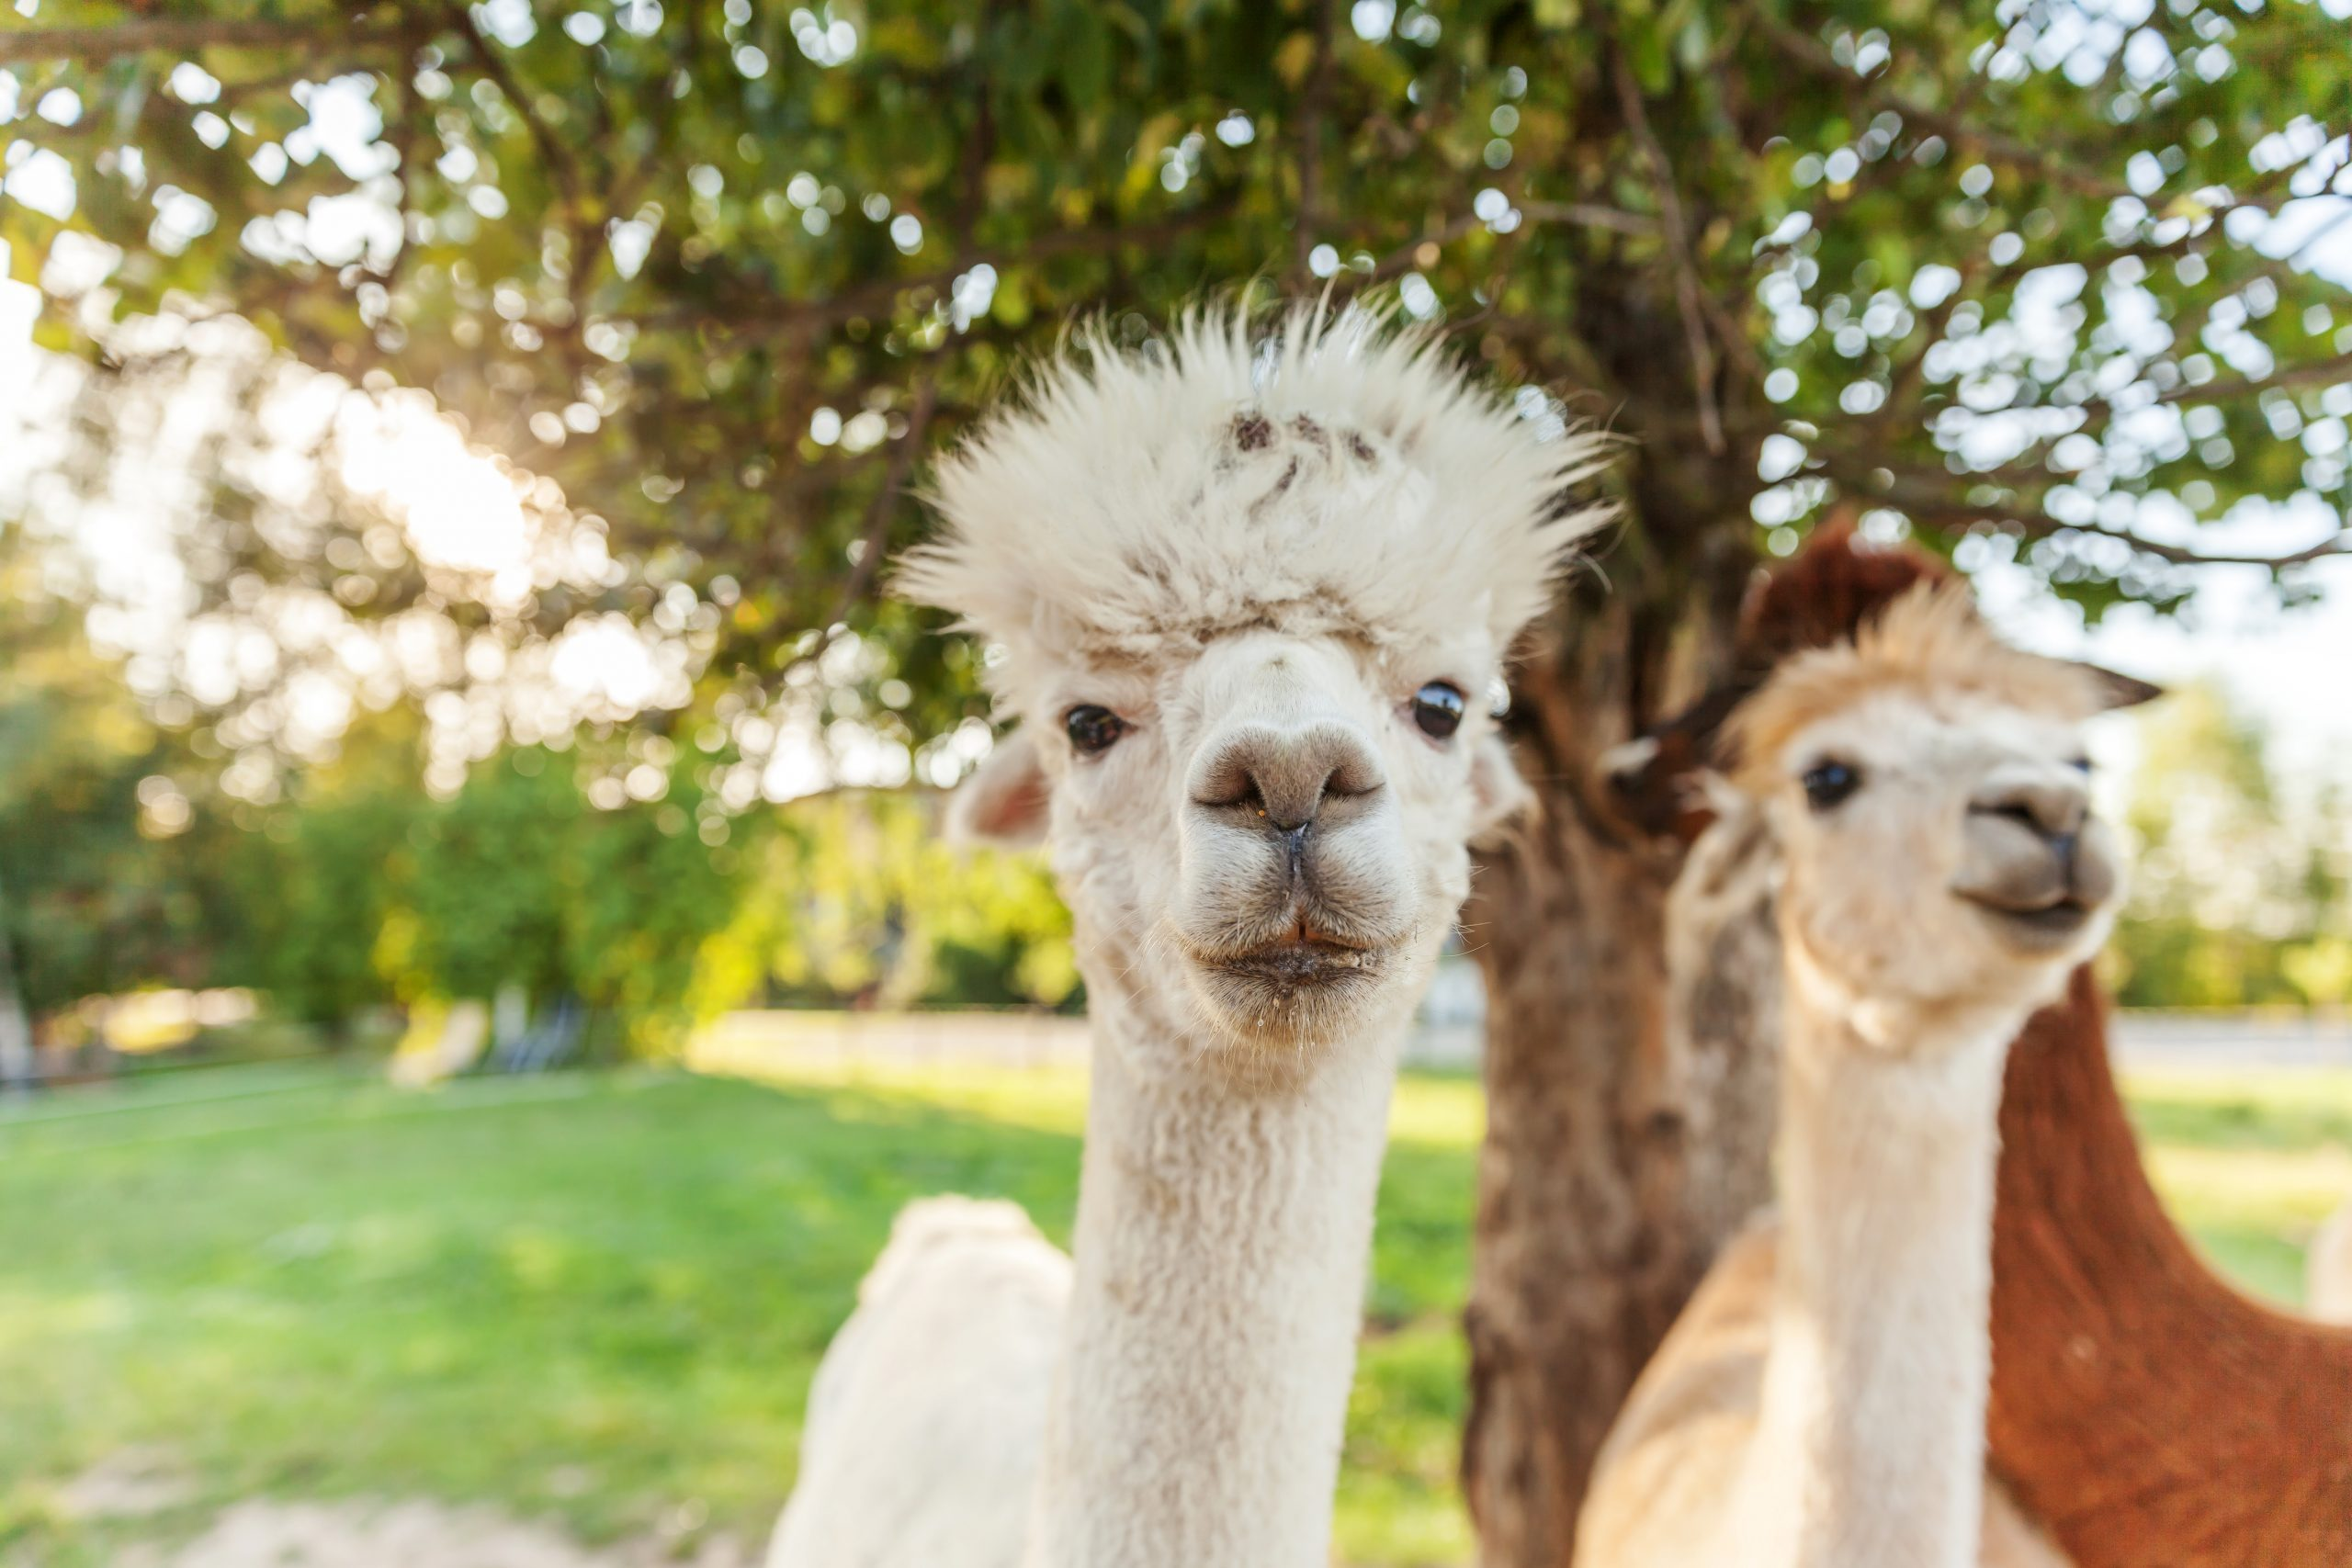 Cute alpaca with funny face relaxing on ranch in summer day. Domestic alpacas grazing on pasture in natural eco farm countryside background. Animal care and ecological farming concept